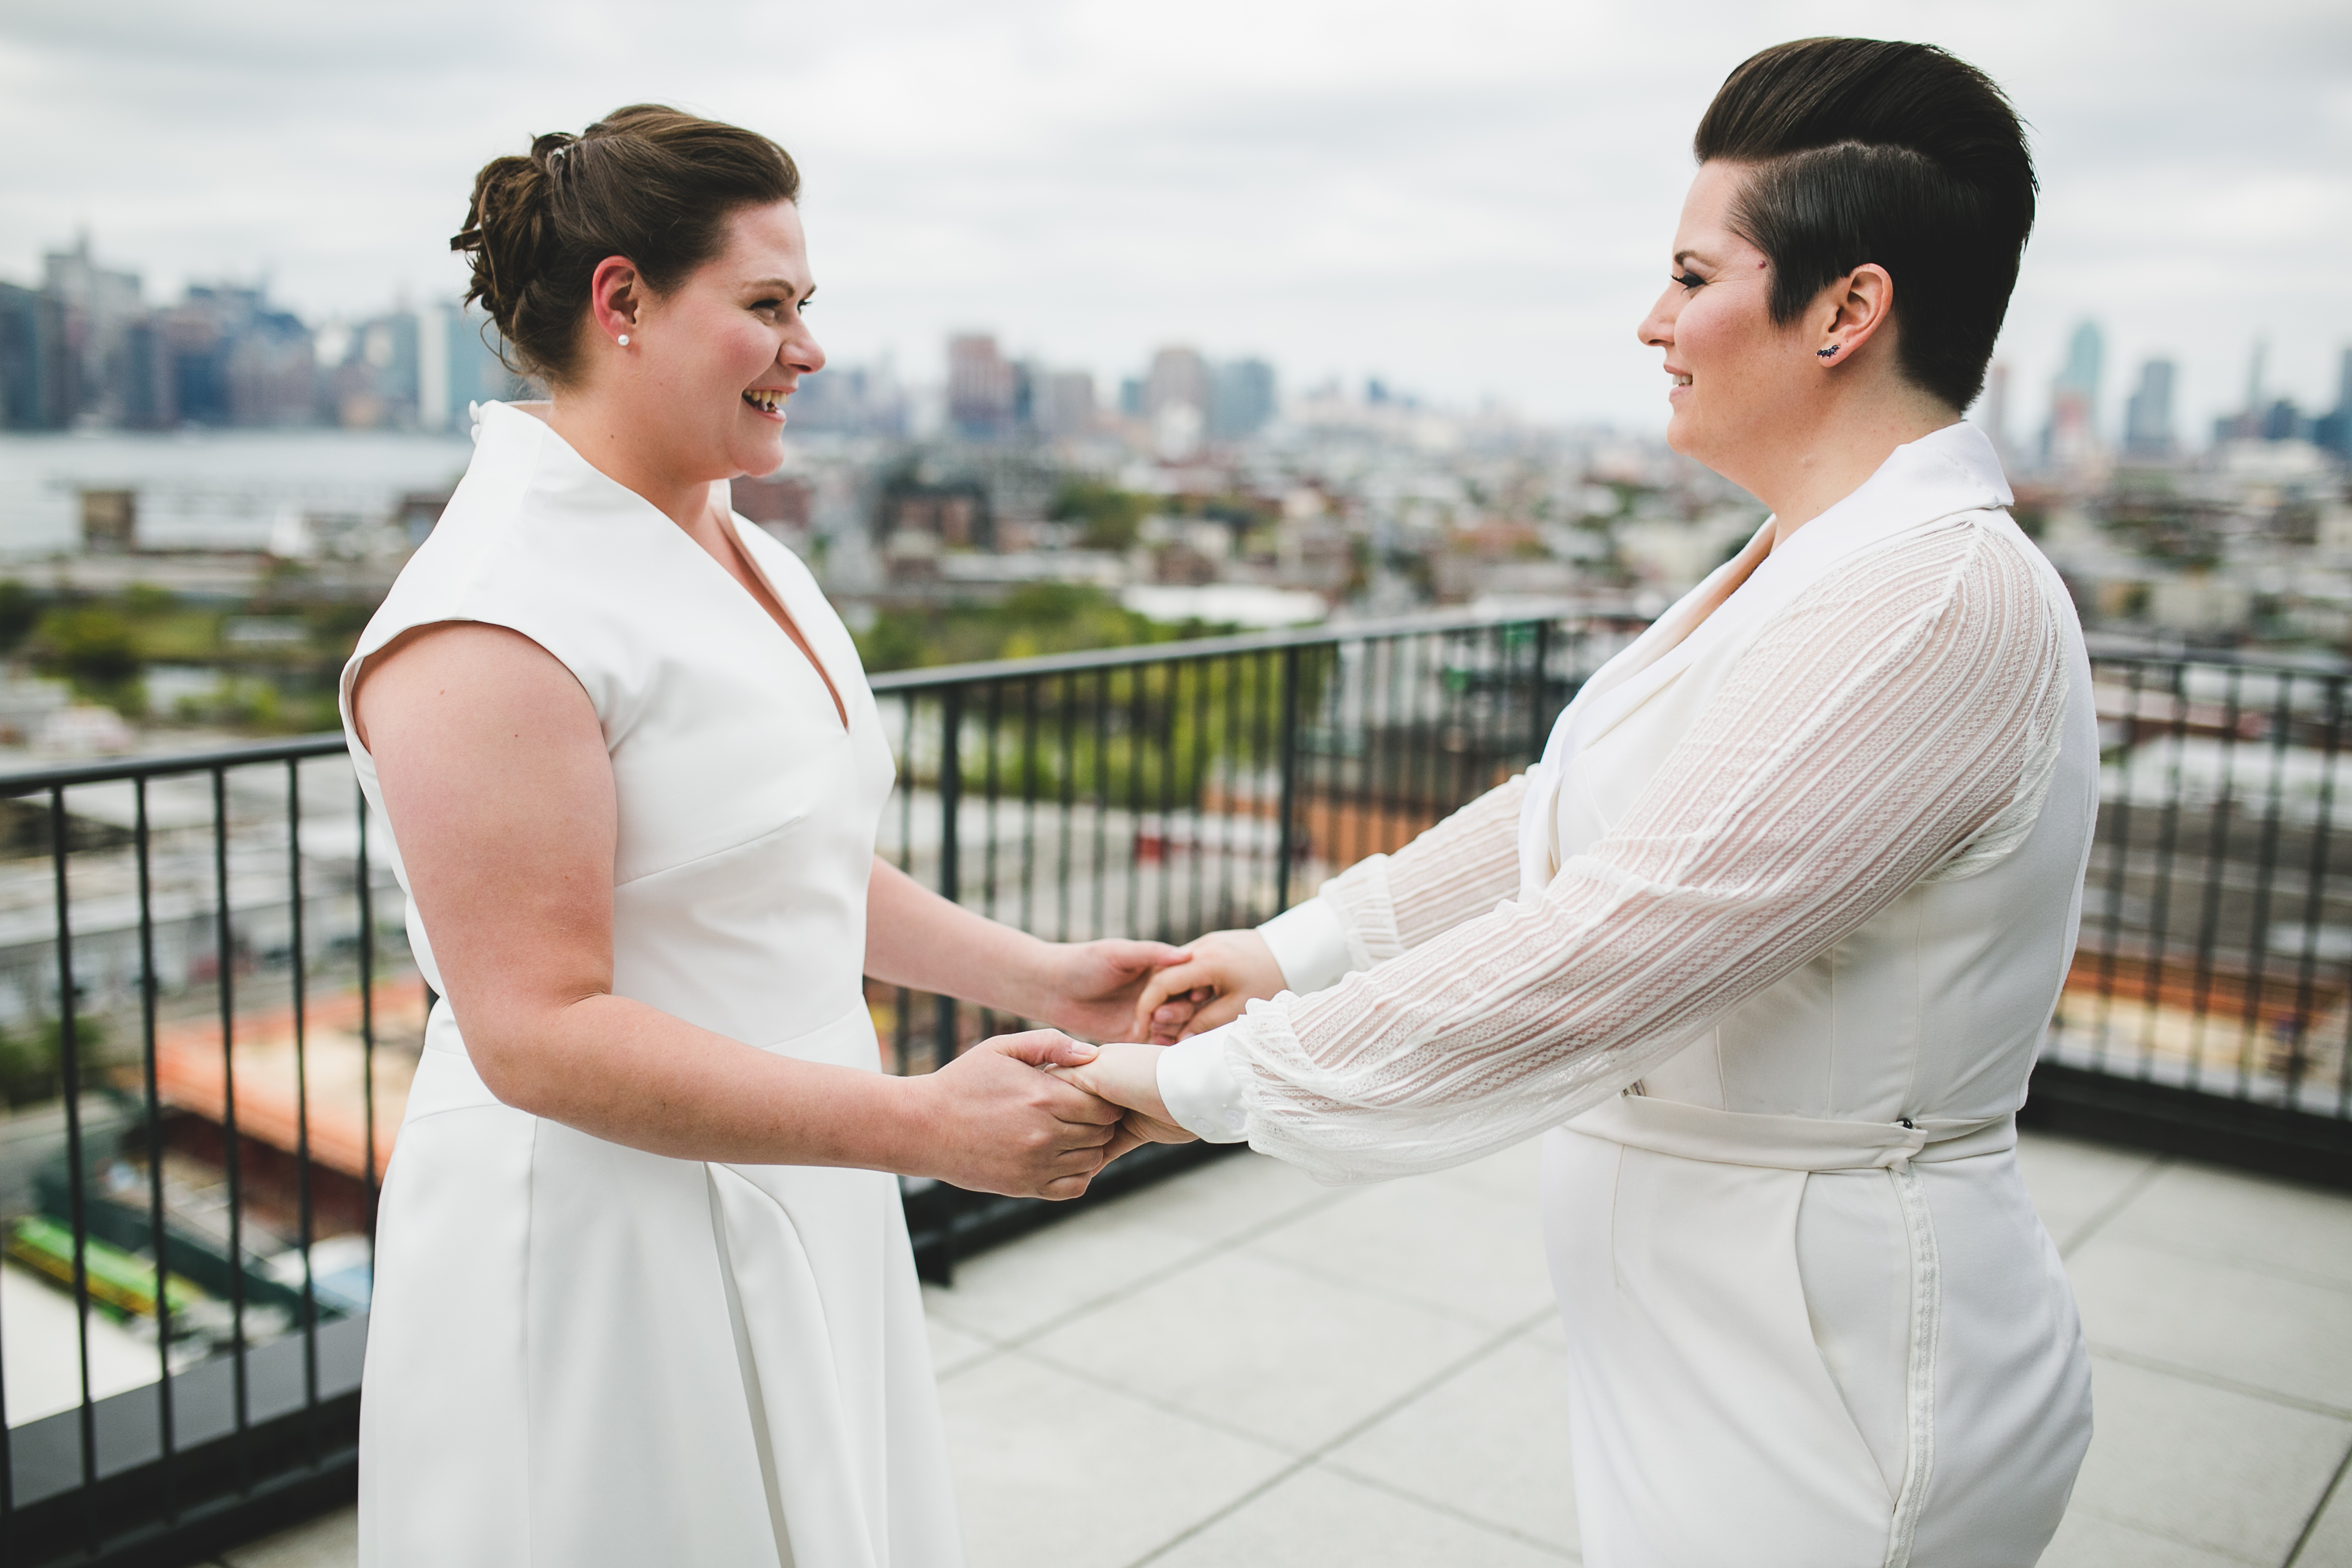 Two brides getting married at the Wythe Hotel, Williamsburg, Brooklyn